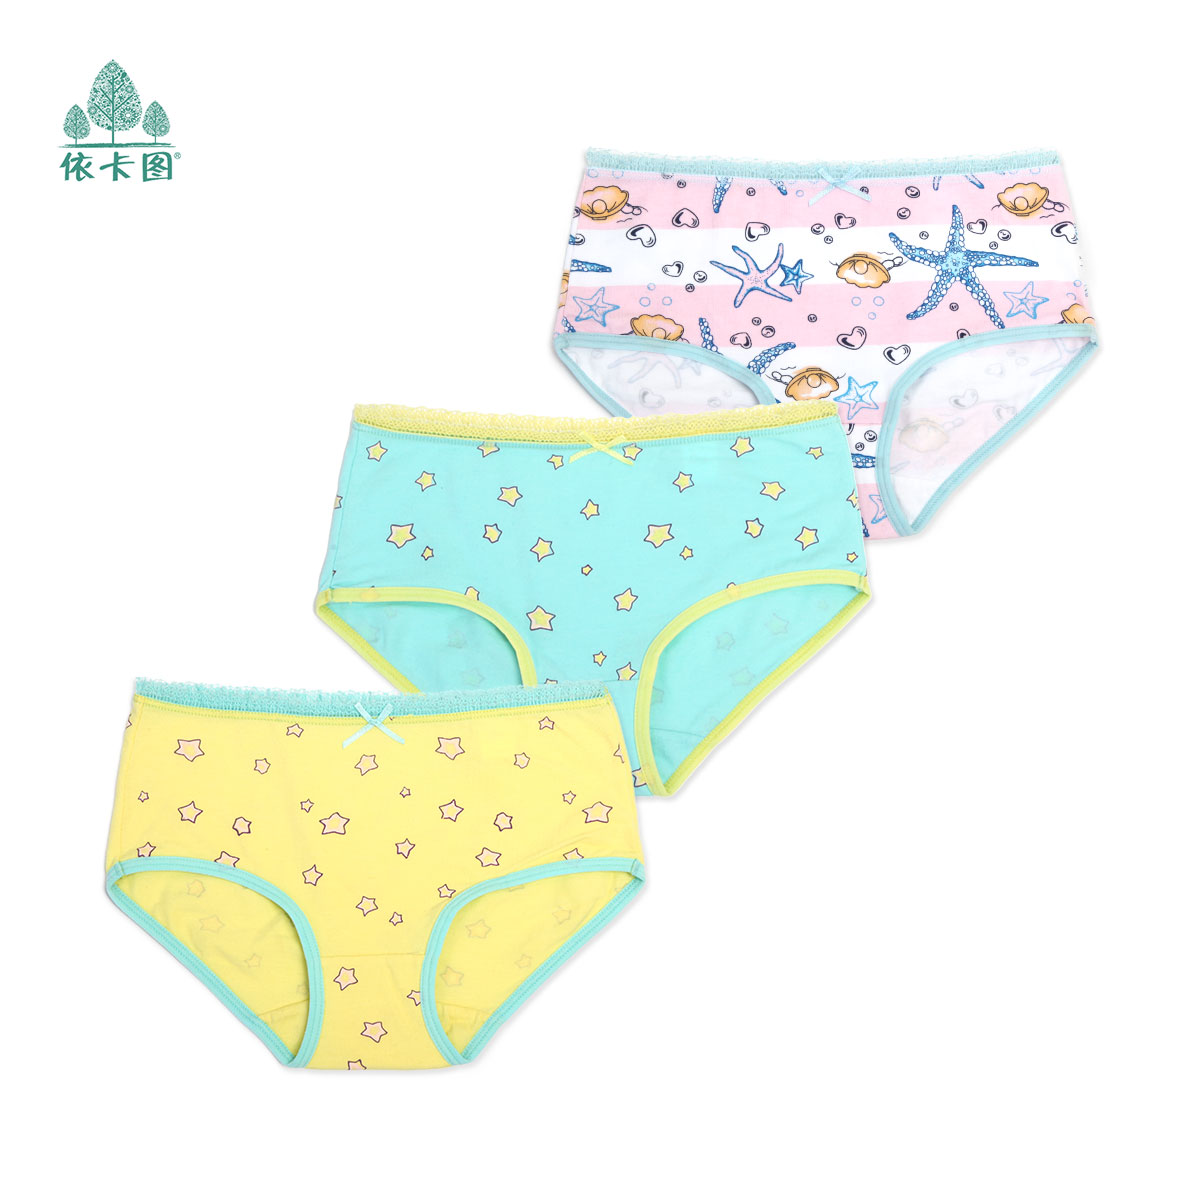 [Three] installed summer zhongshan university tong xuesheng girls underwear triangle cotton underwear children's cotton underwear